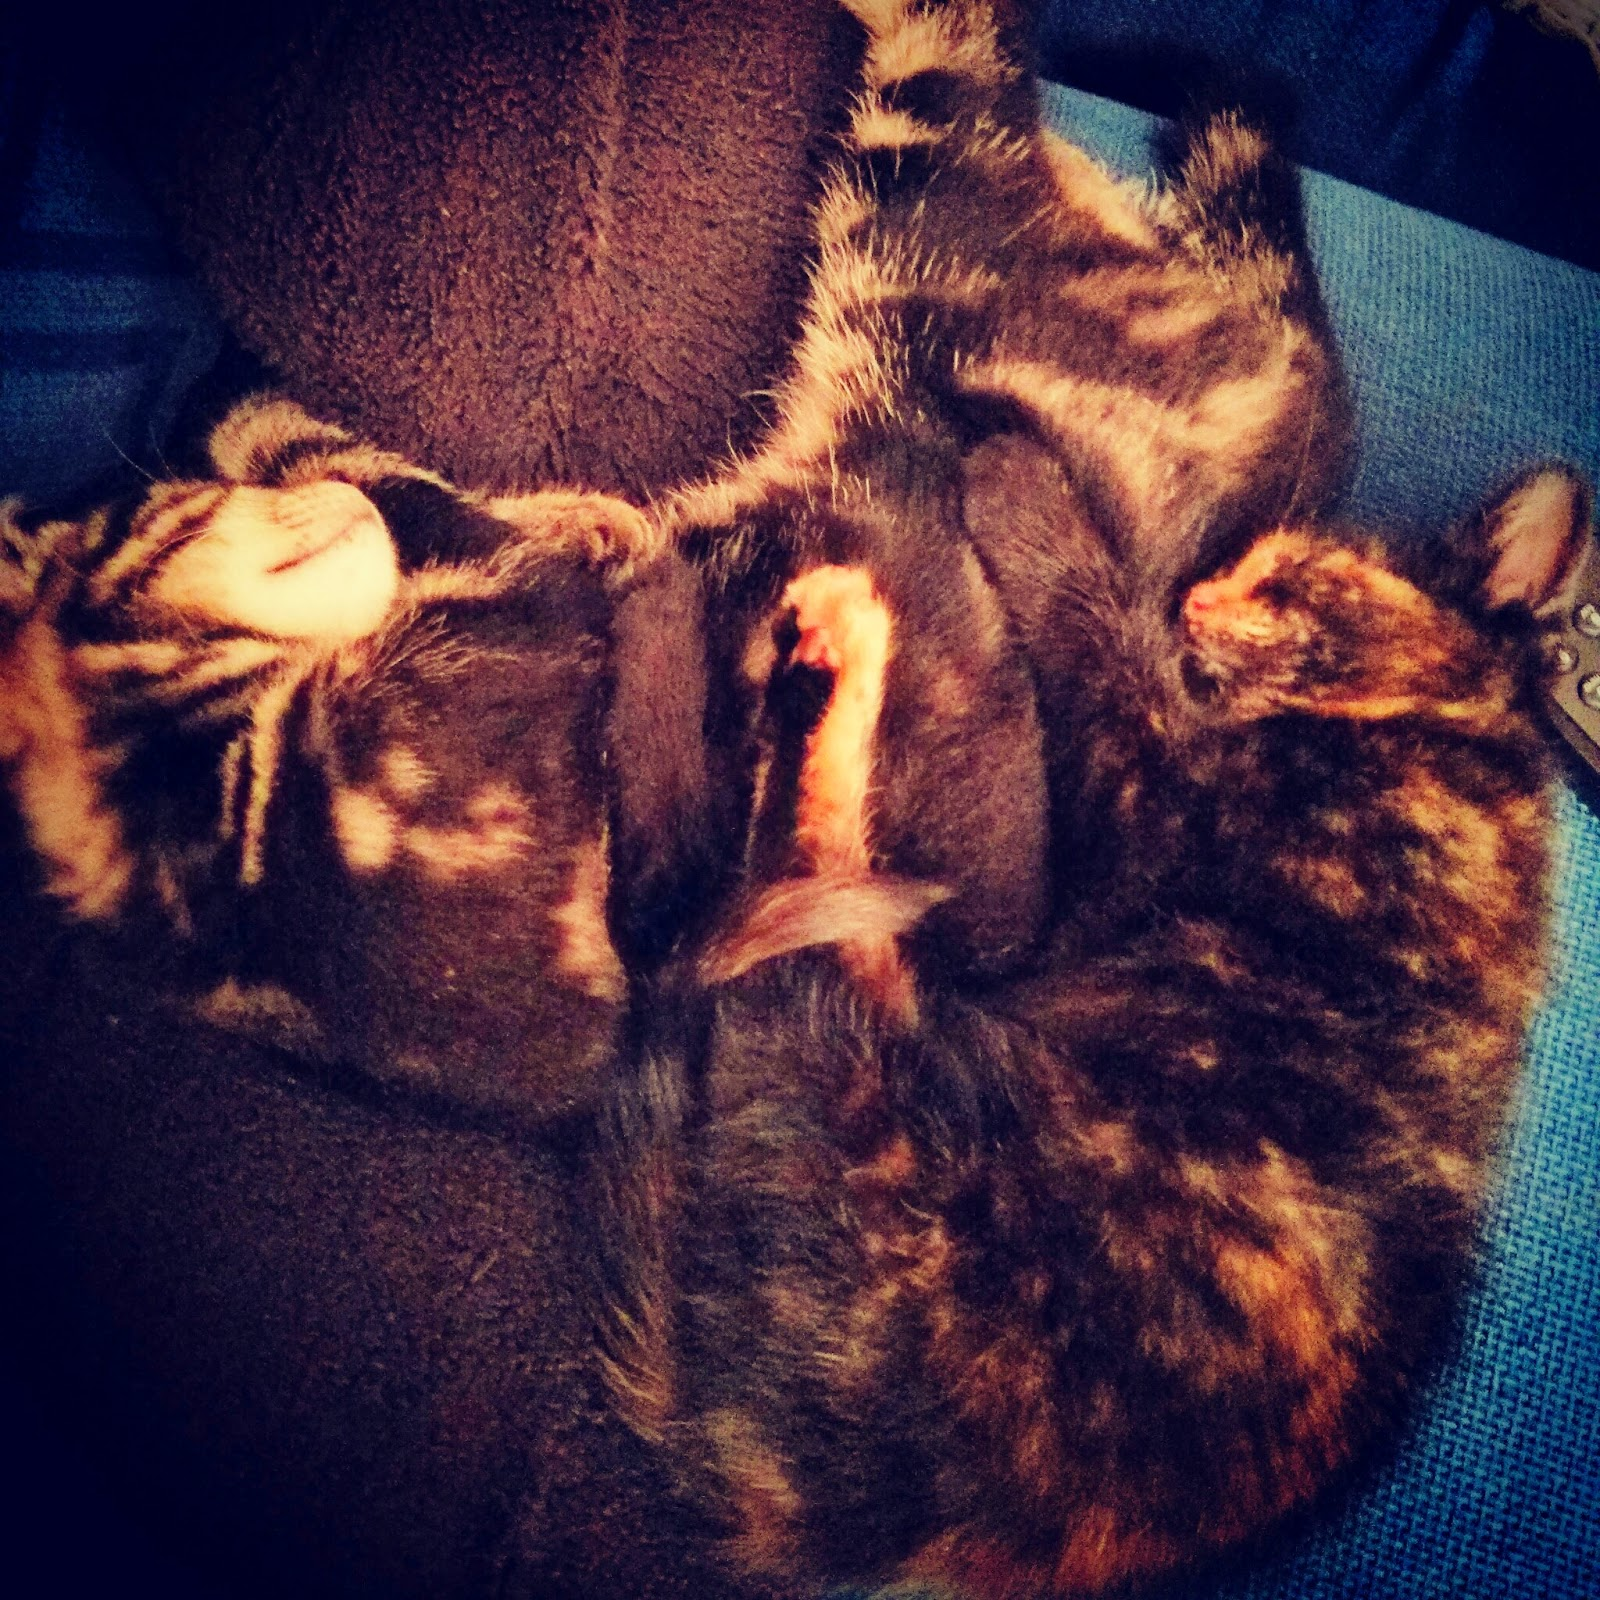 A tangle of kittens